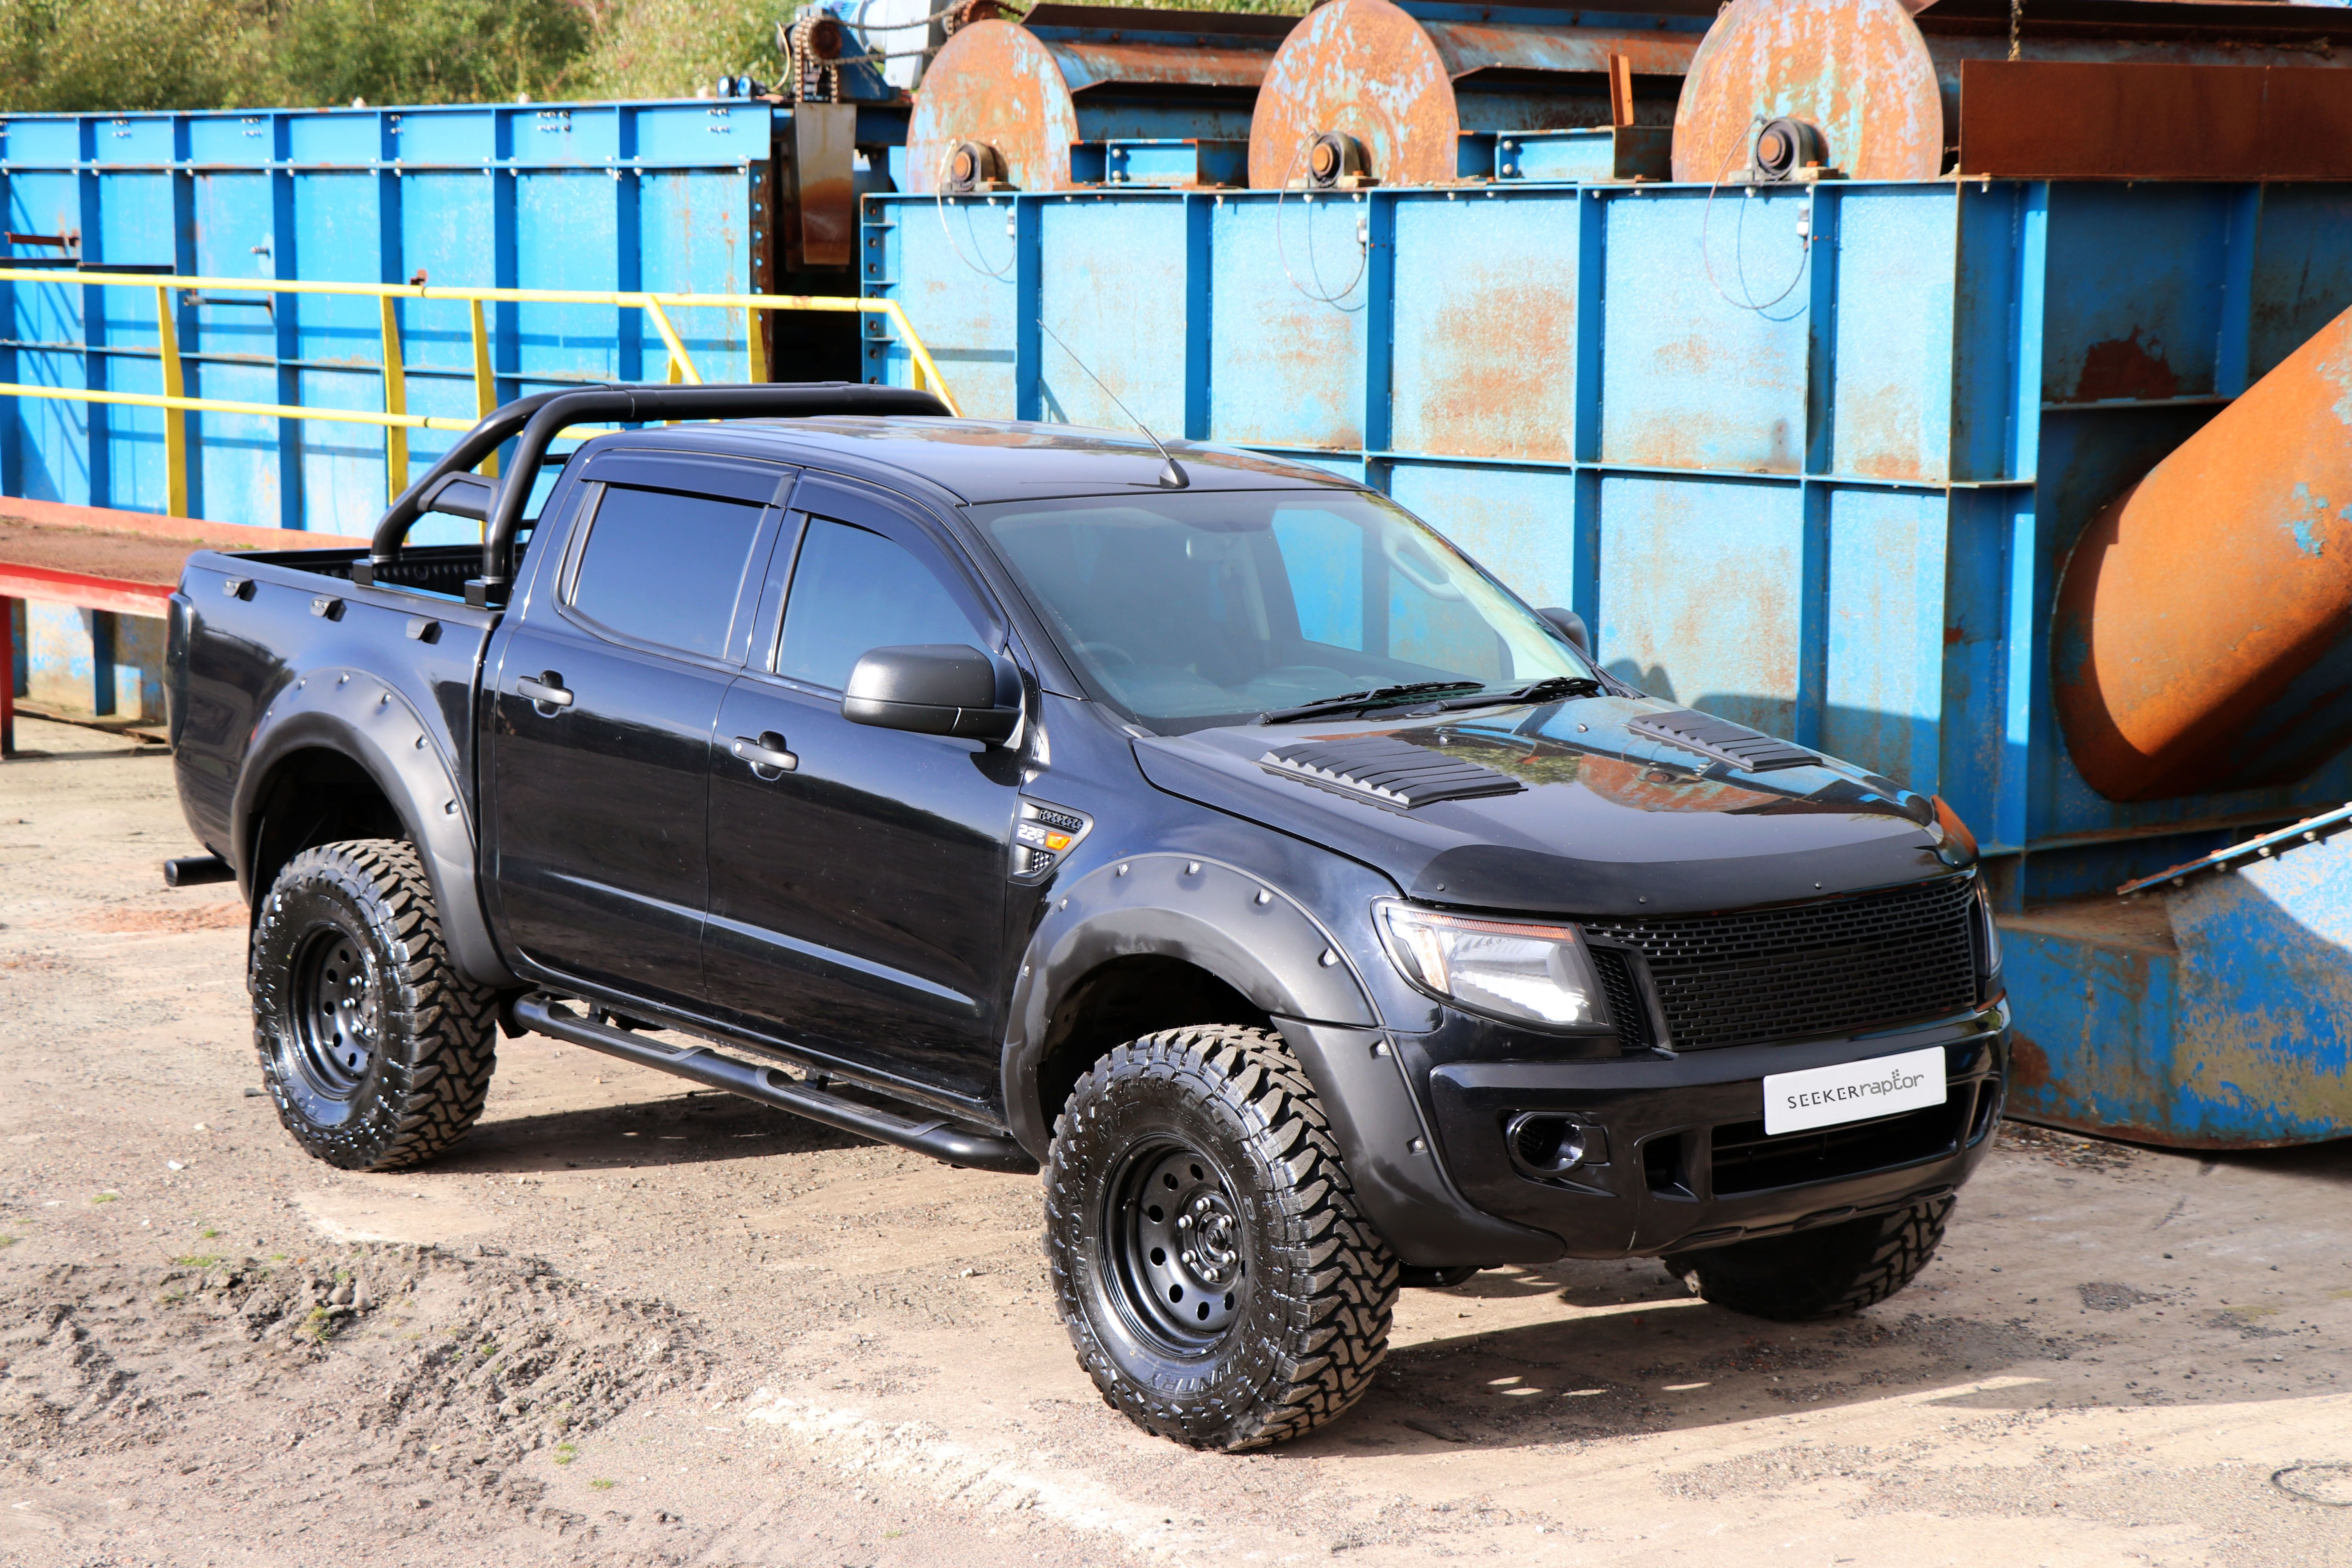 Our Seeker Raptor All Black Standard Edition Comes With A 3 Suspension Lift Kit Wide Arch Body Kit Colour Coded Ford Ranger 4x4 Ford Ranger Used Ford Ranger